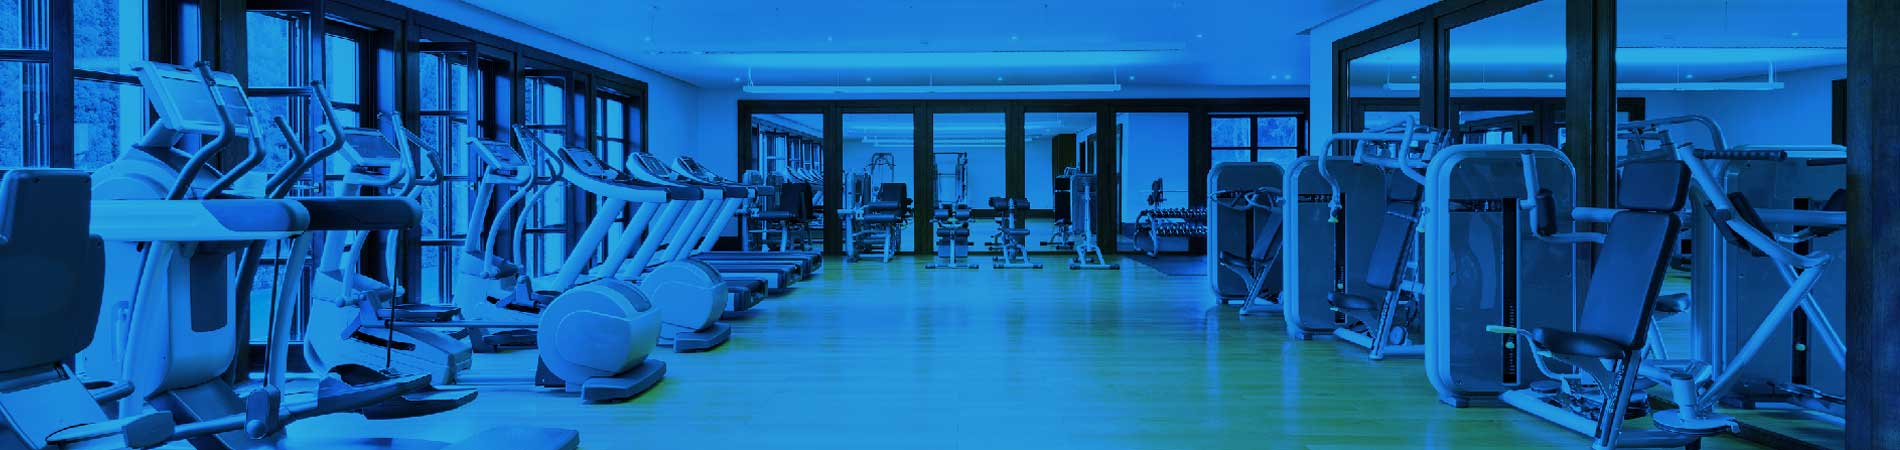 Gym equipment repairs and servicing